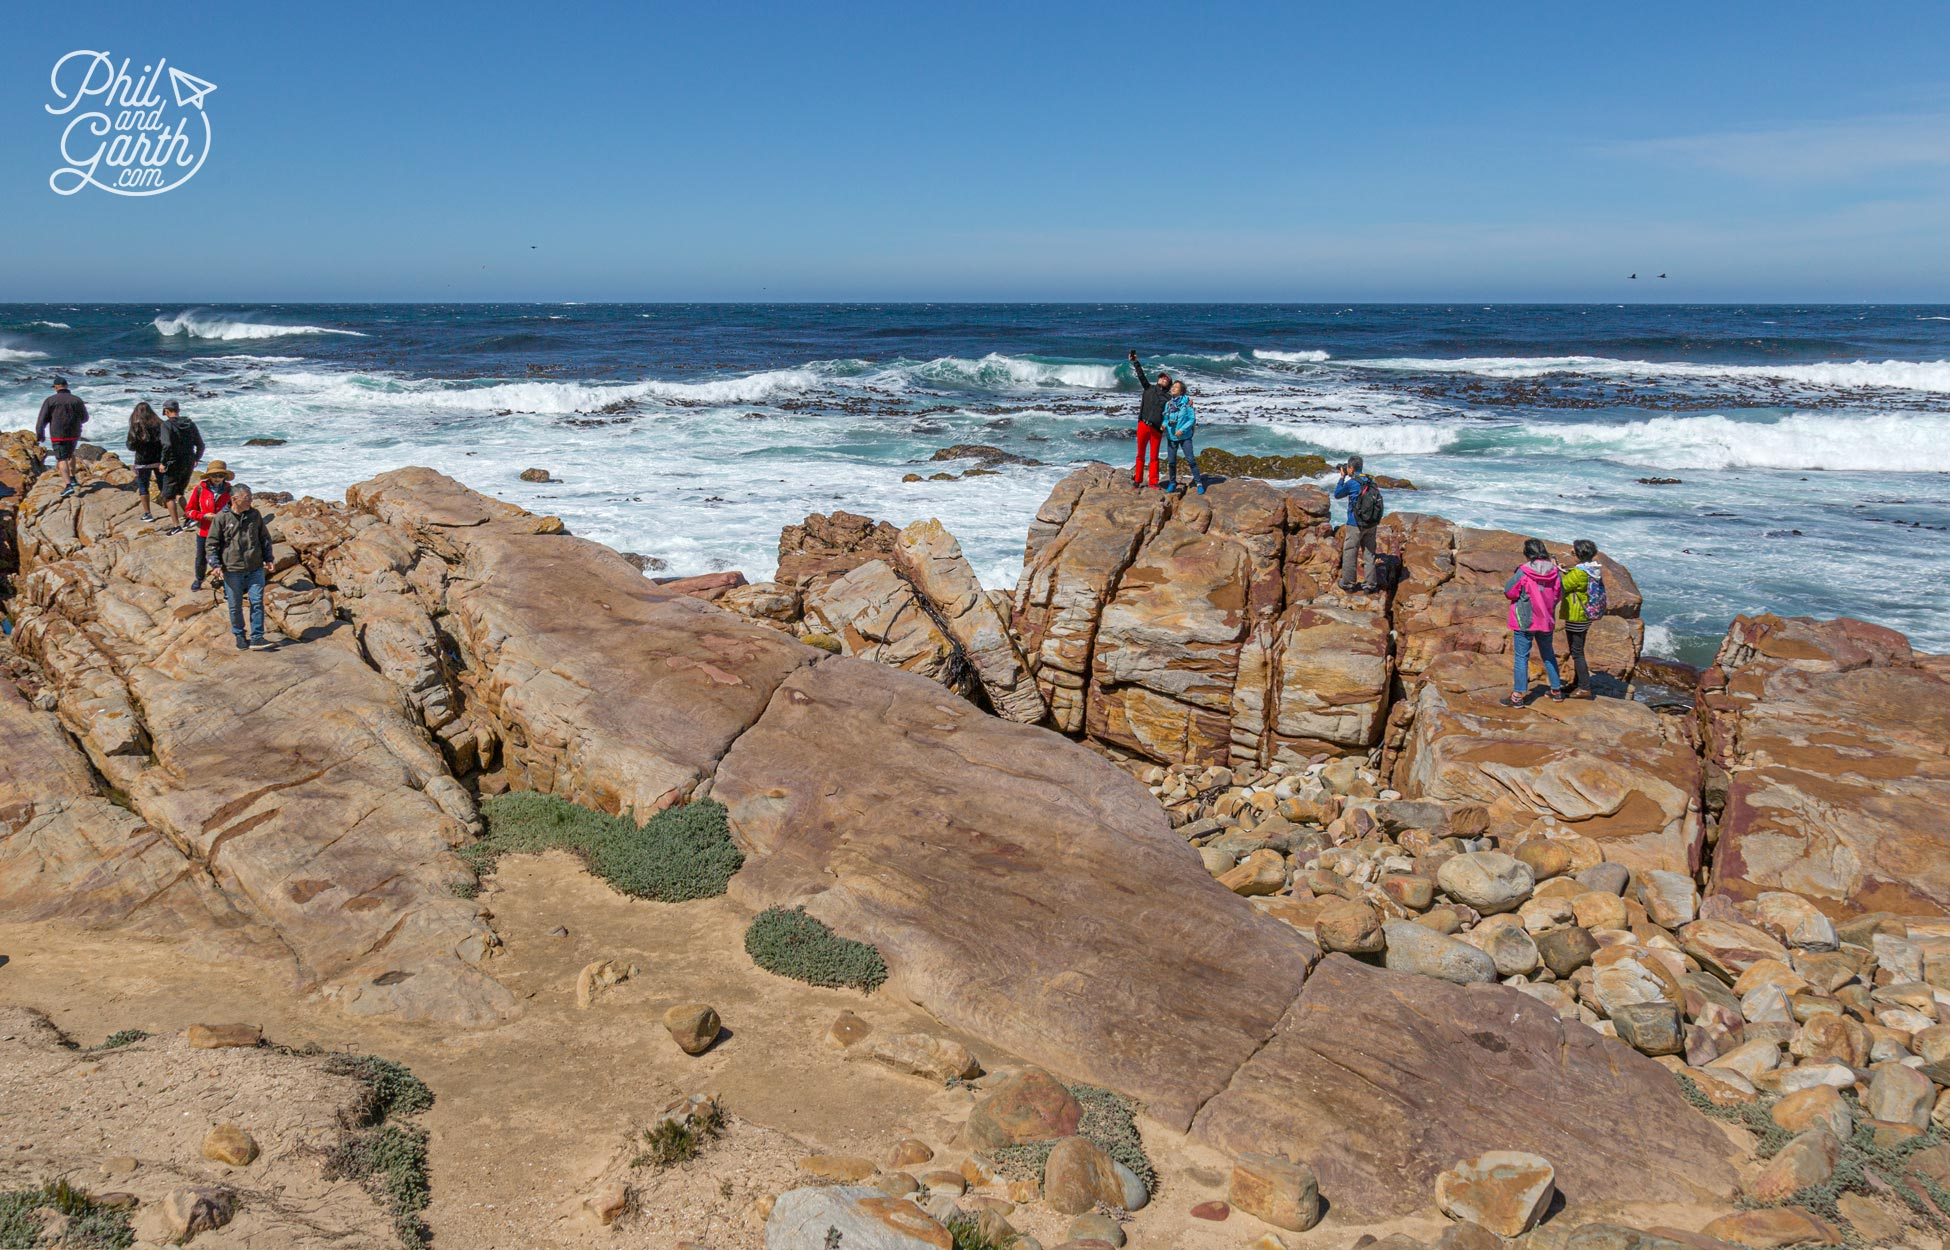 The Cape of Good Hope - The most south westerly point of Africa